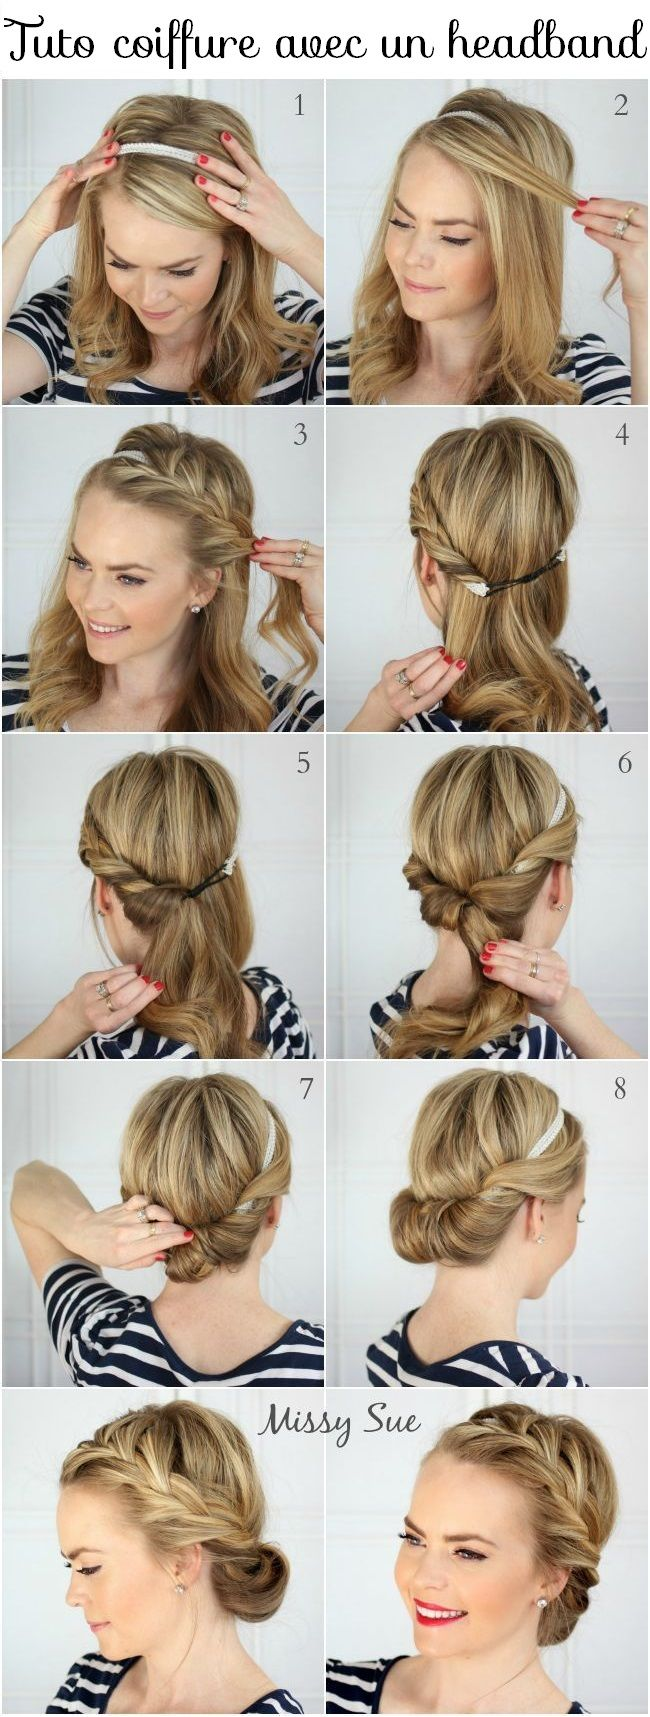 1000 Images About Tuto De Coiffure On Pinterest Updo Headband